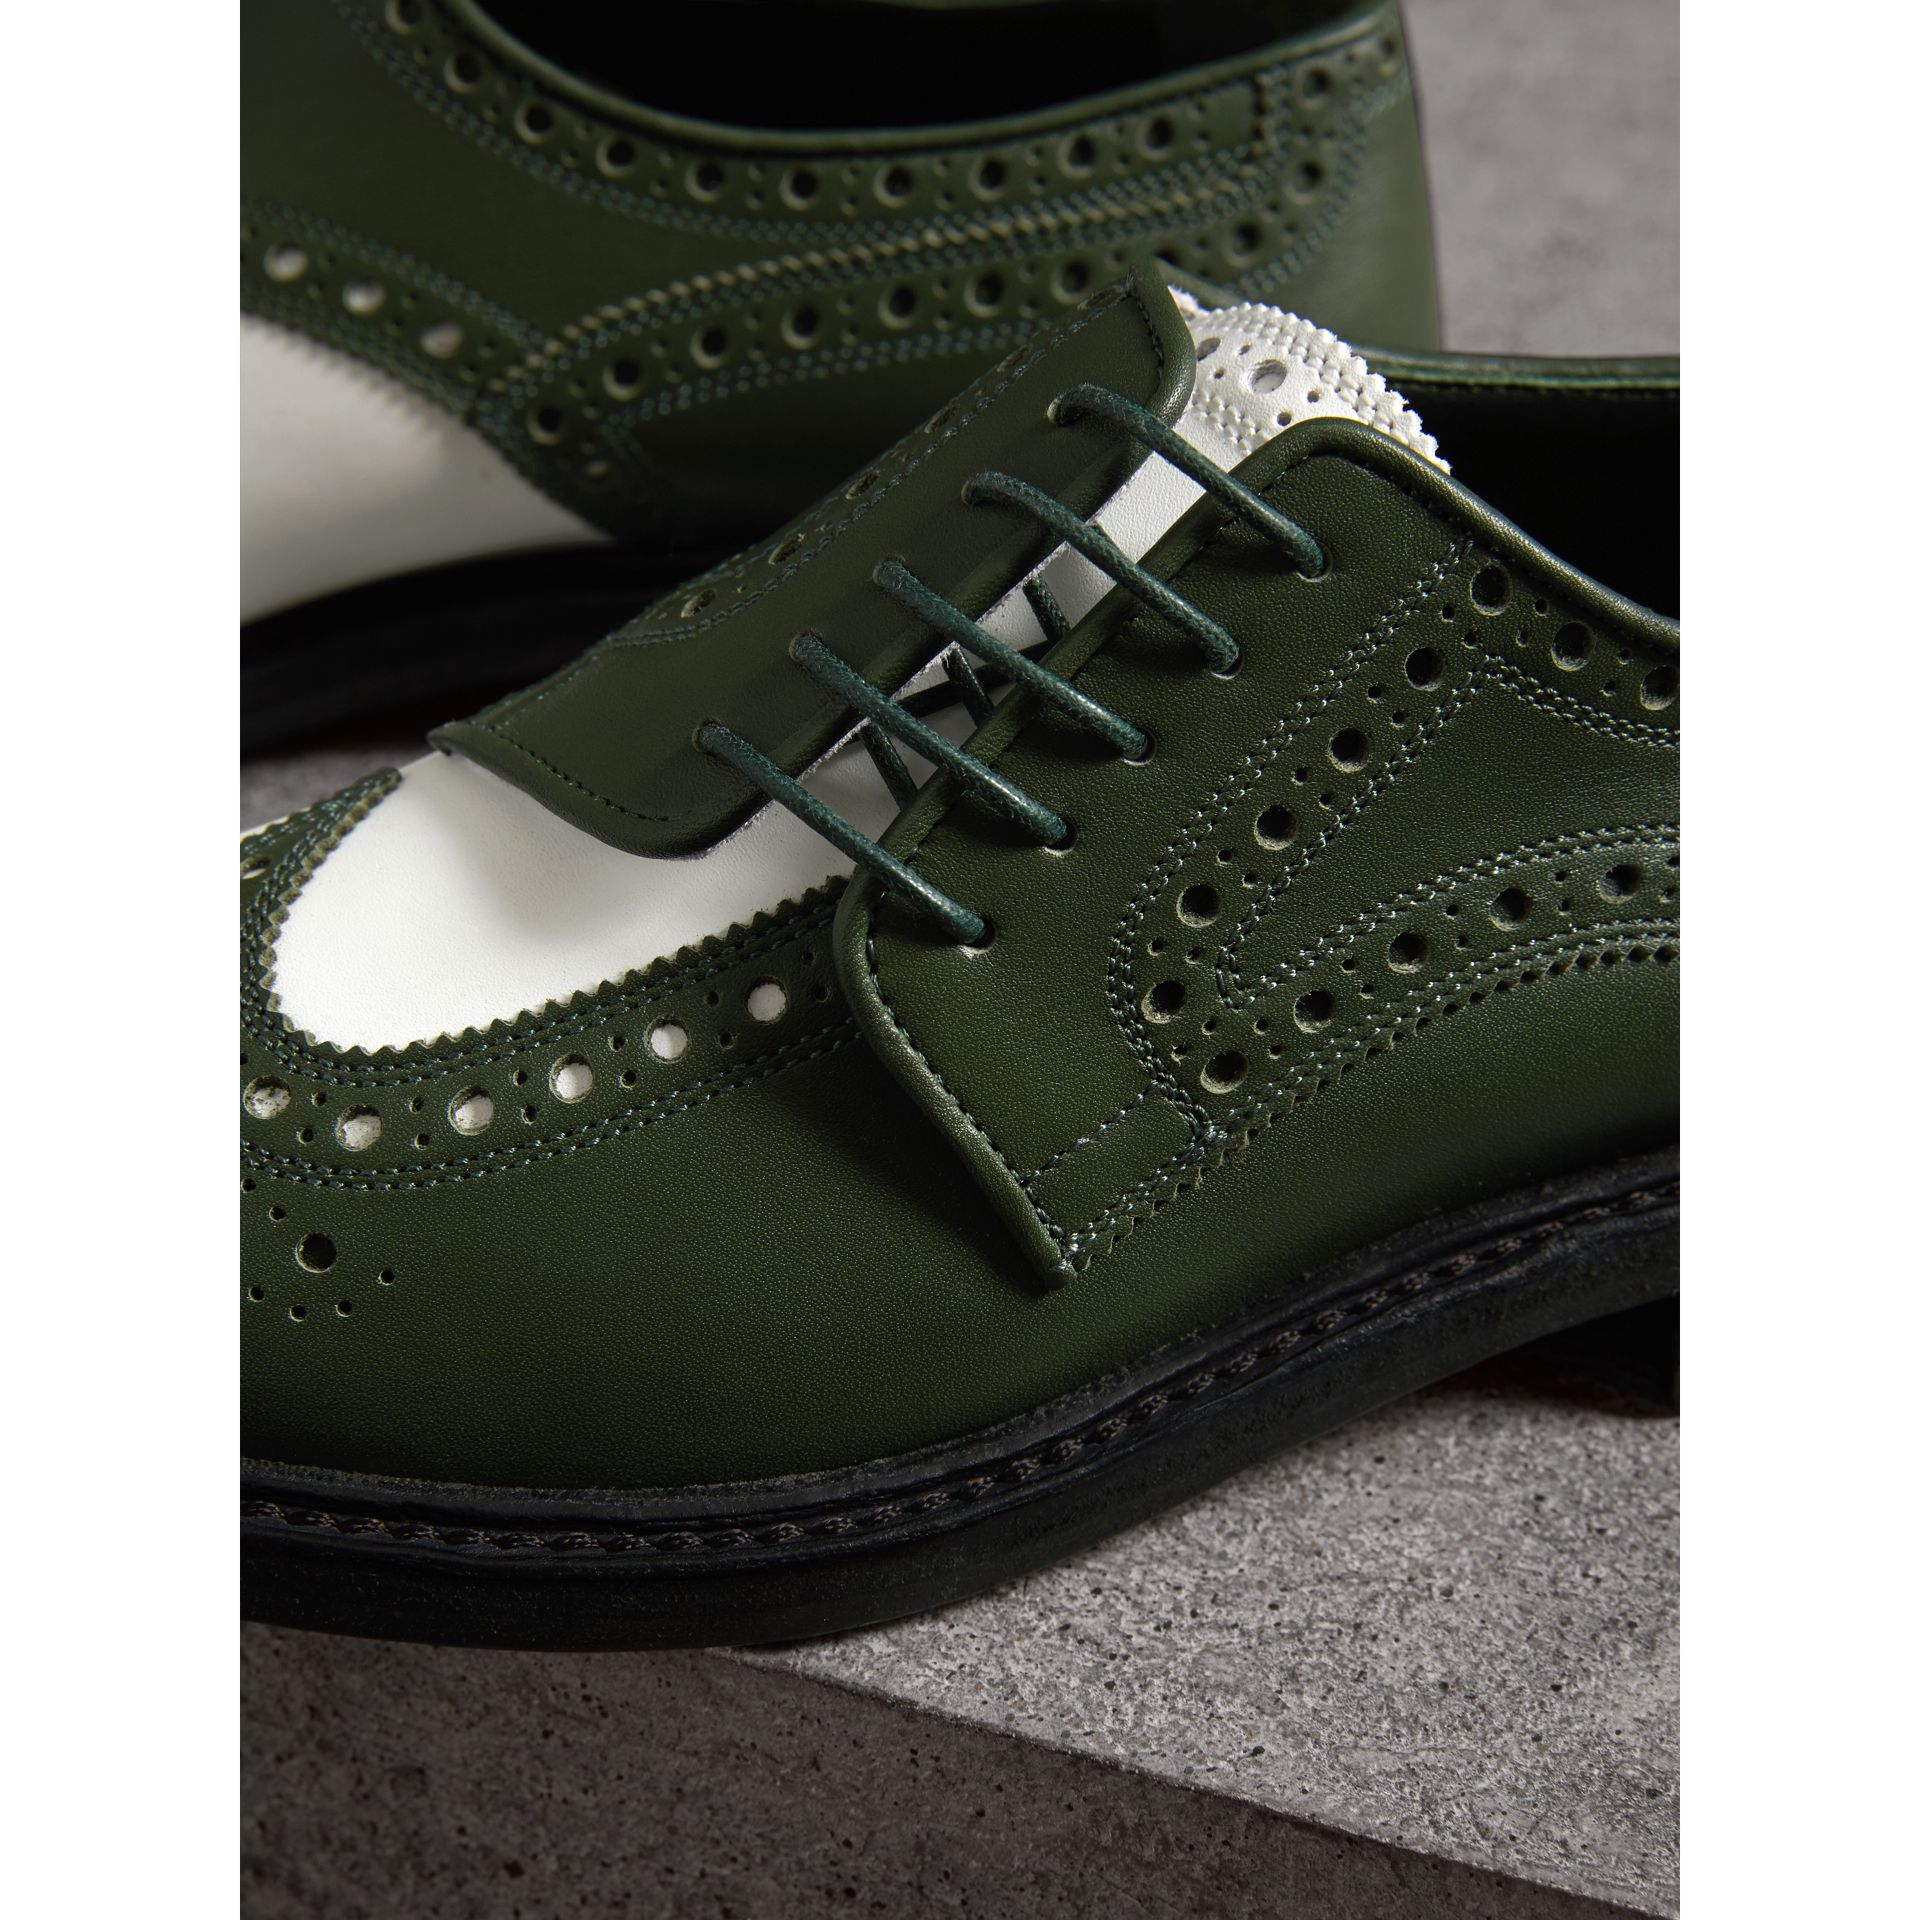 Two-tone Asymmetric Closure Leather Brogues in Dark Green - Women | Burberry - gallery image 1